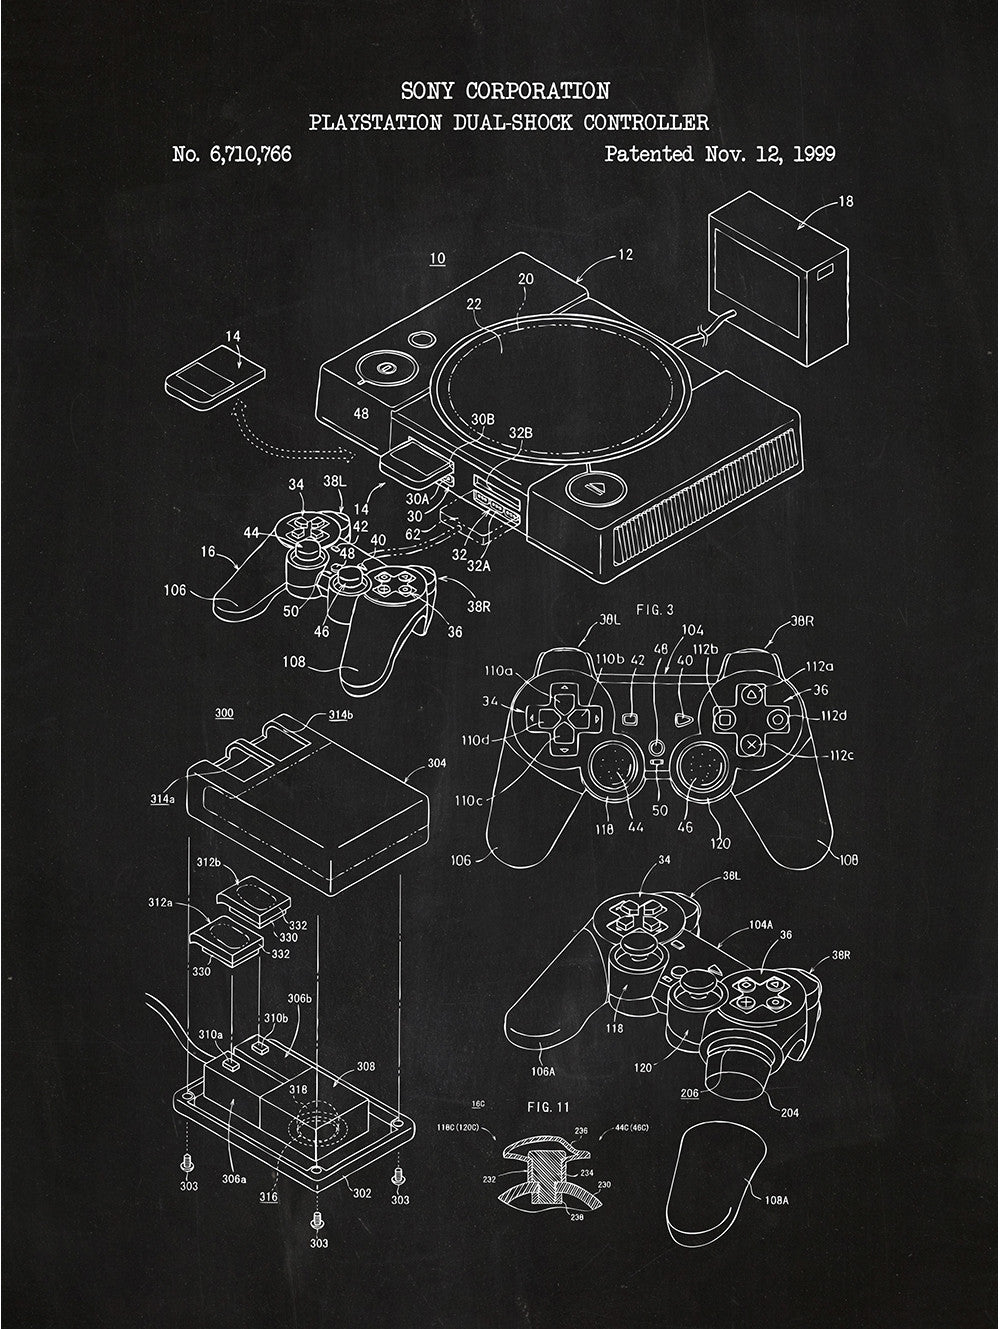 (J6) - Playstation Dual Shock Controller